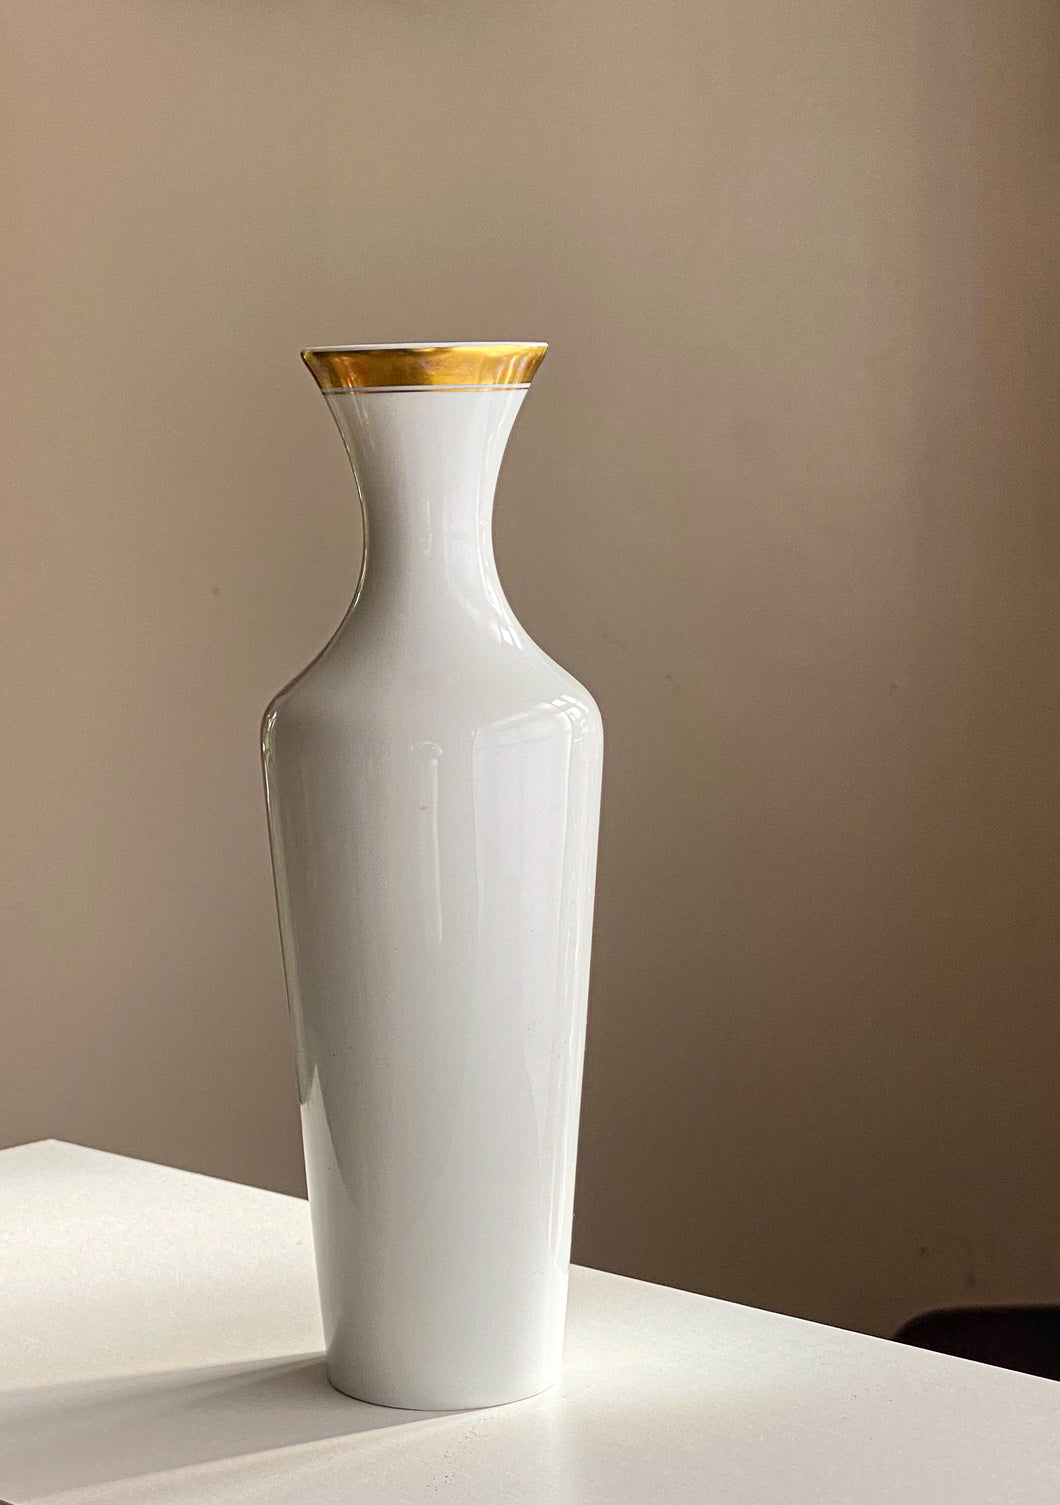 Hutschenreuther Selb Porcelain Vase Design by Robert Broch with  gold decor 1960/70s